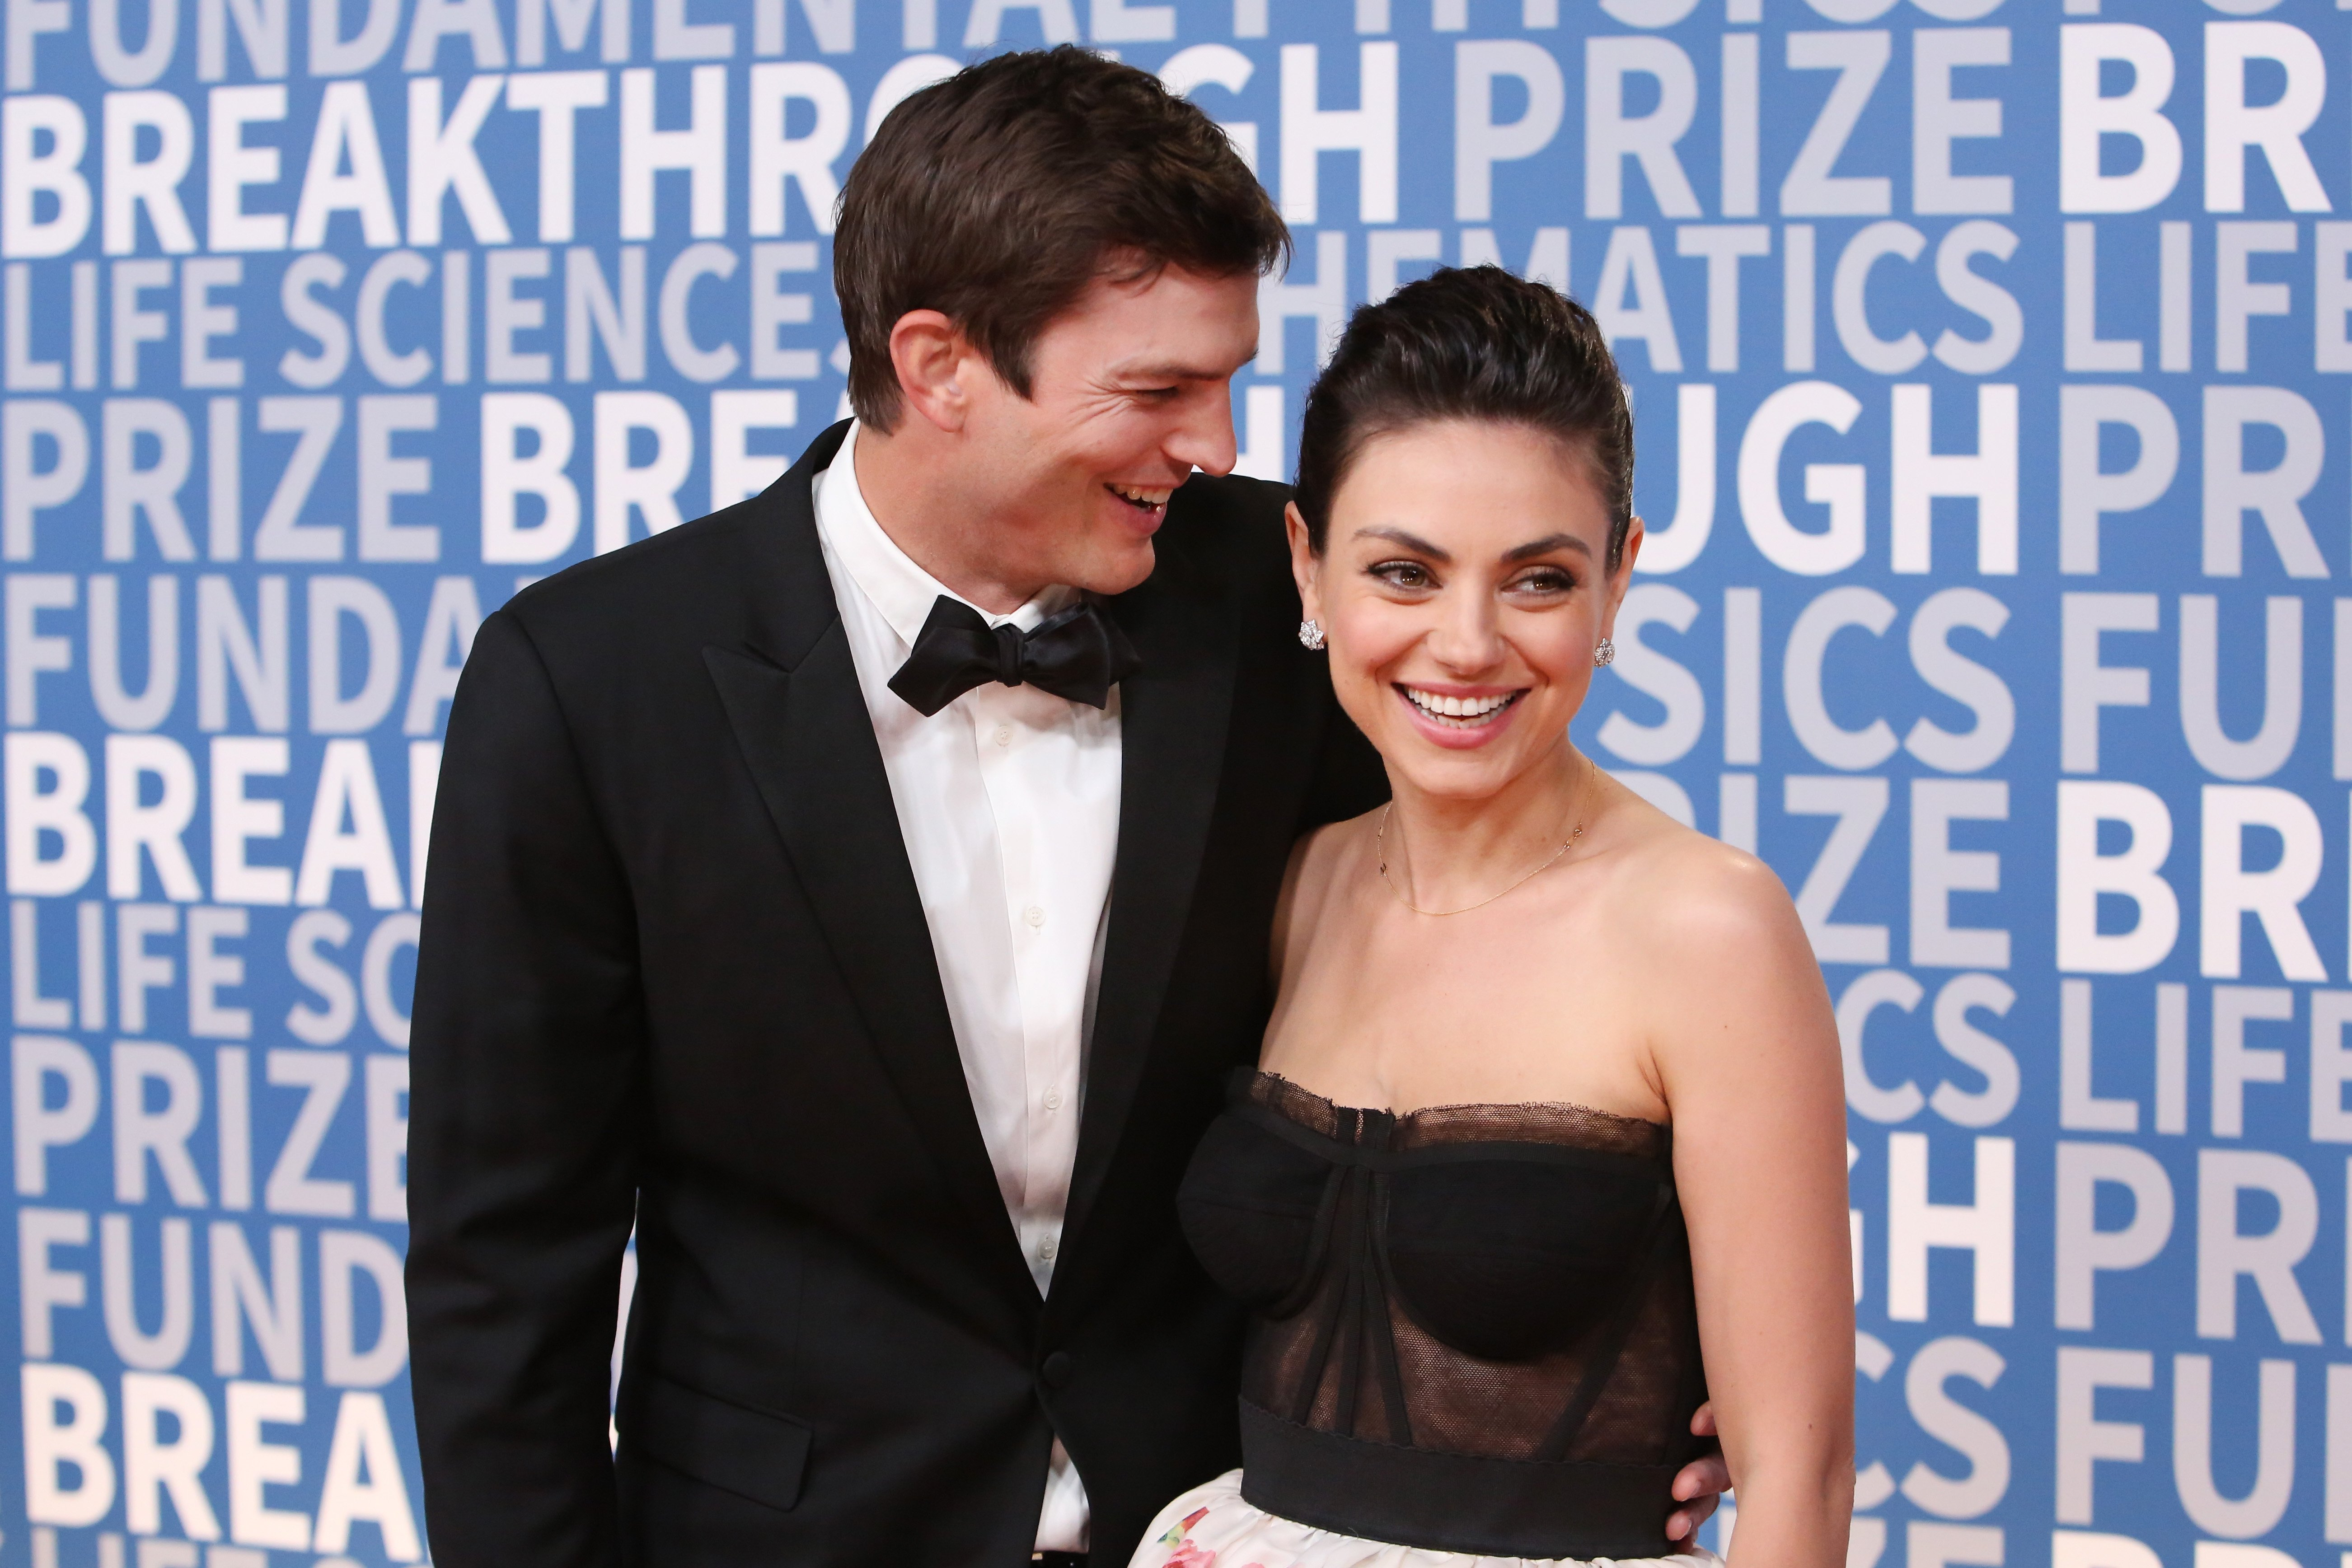 Ashton Kutcher and Mila Kunis pictured at the 2018 Breakthrough Prize at NASA Ames Research Center, 2017, Mountain View, California. | Photo: Getty Images